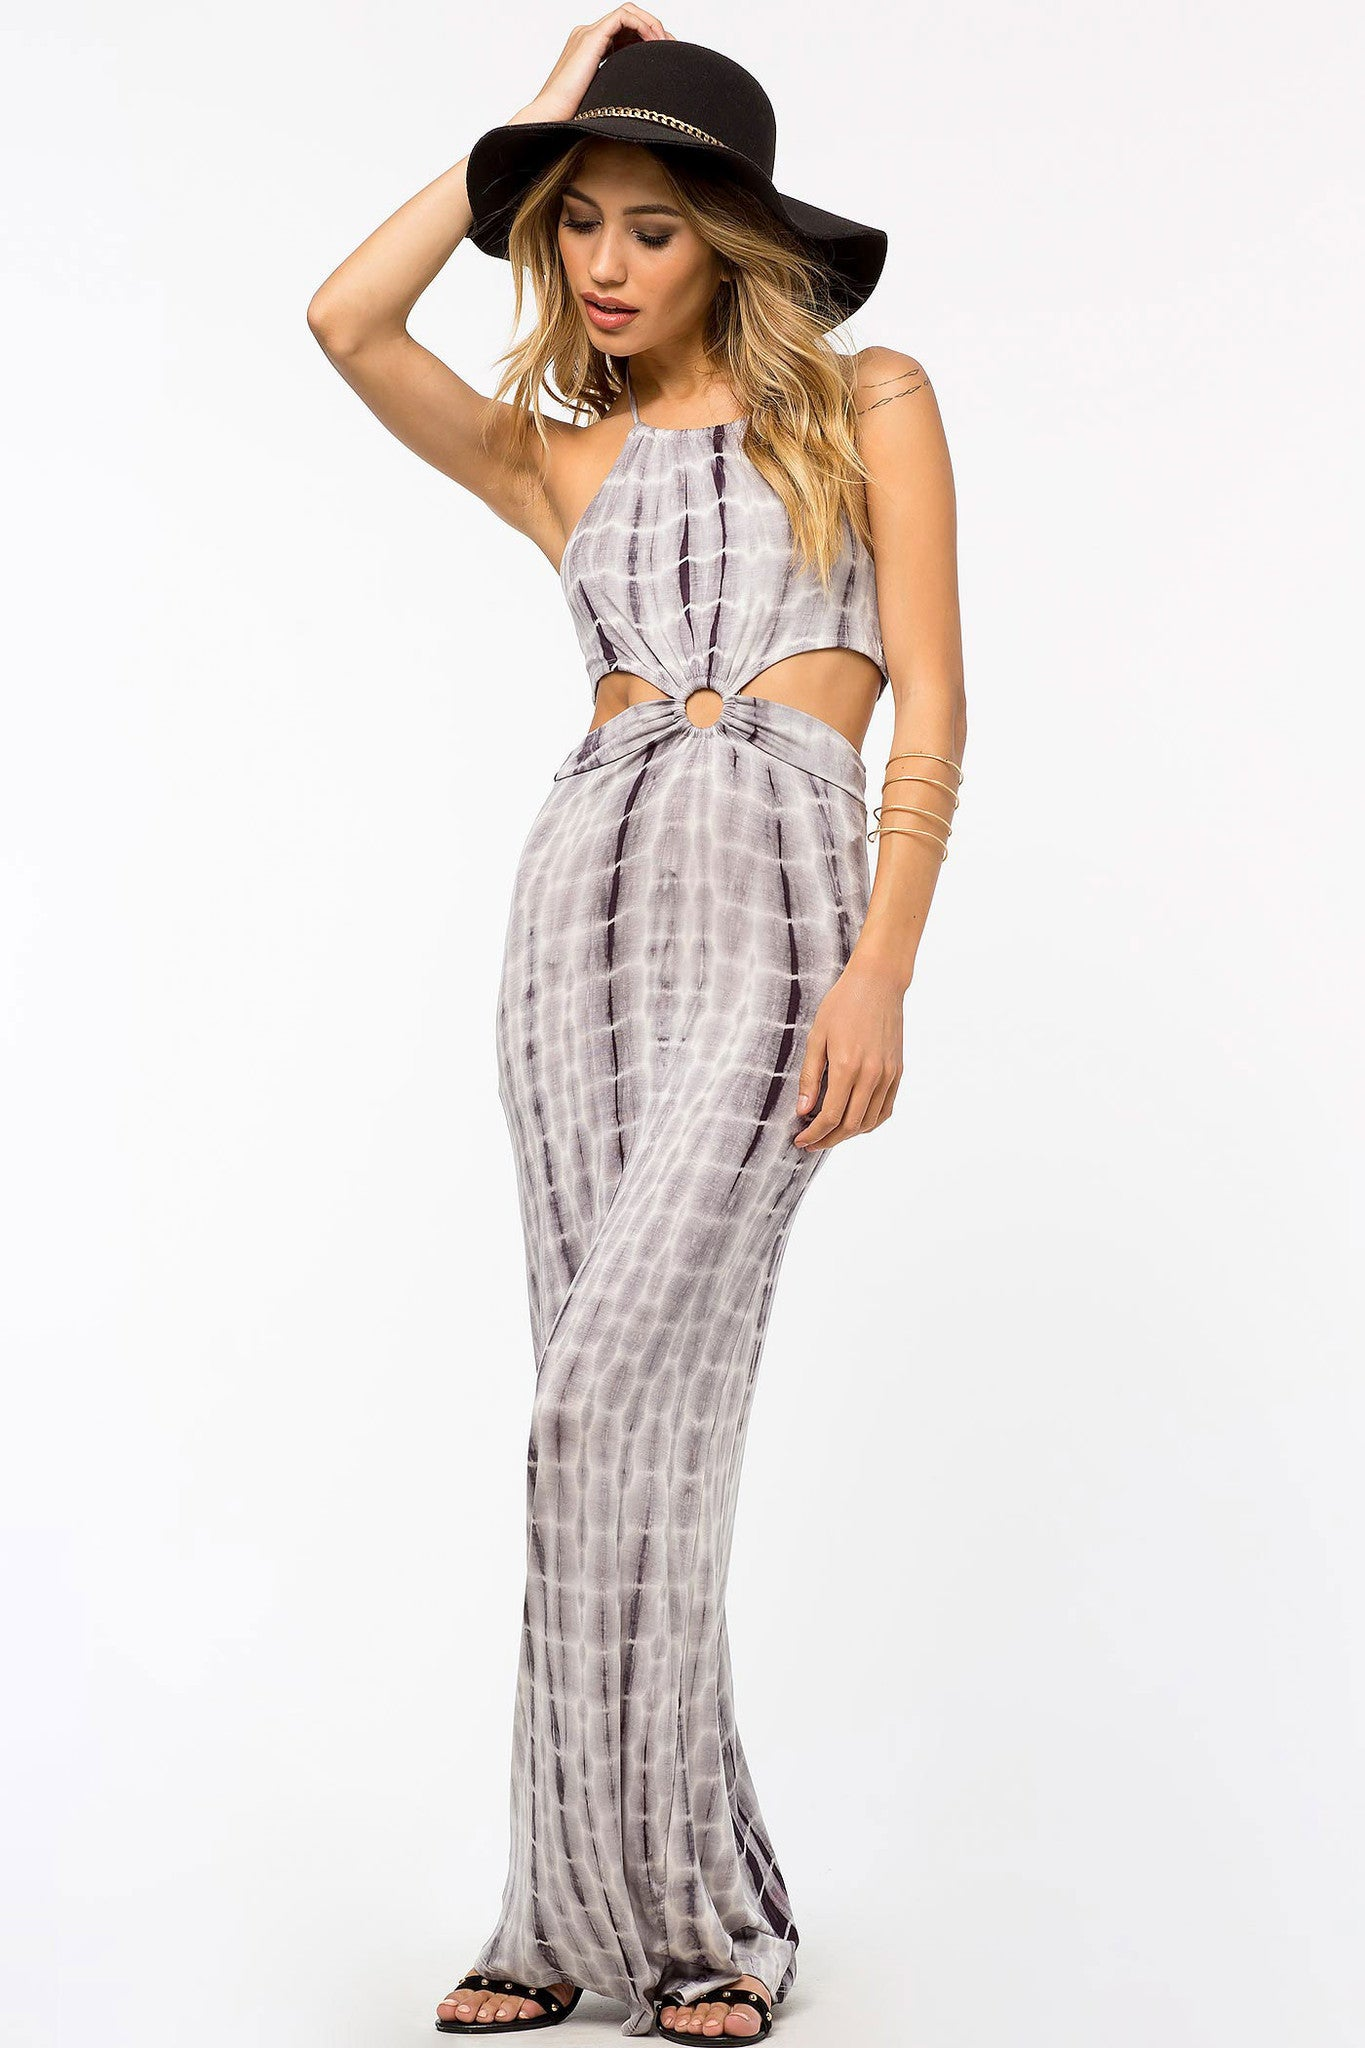 Womens Bohemian Casual Street Style Outfit Sleeveless Cutout Tie-Dye Maxi dress. Front View.